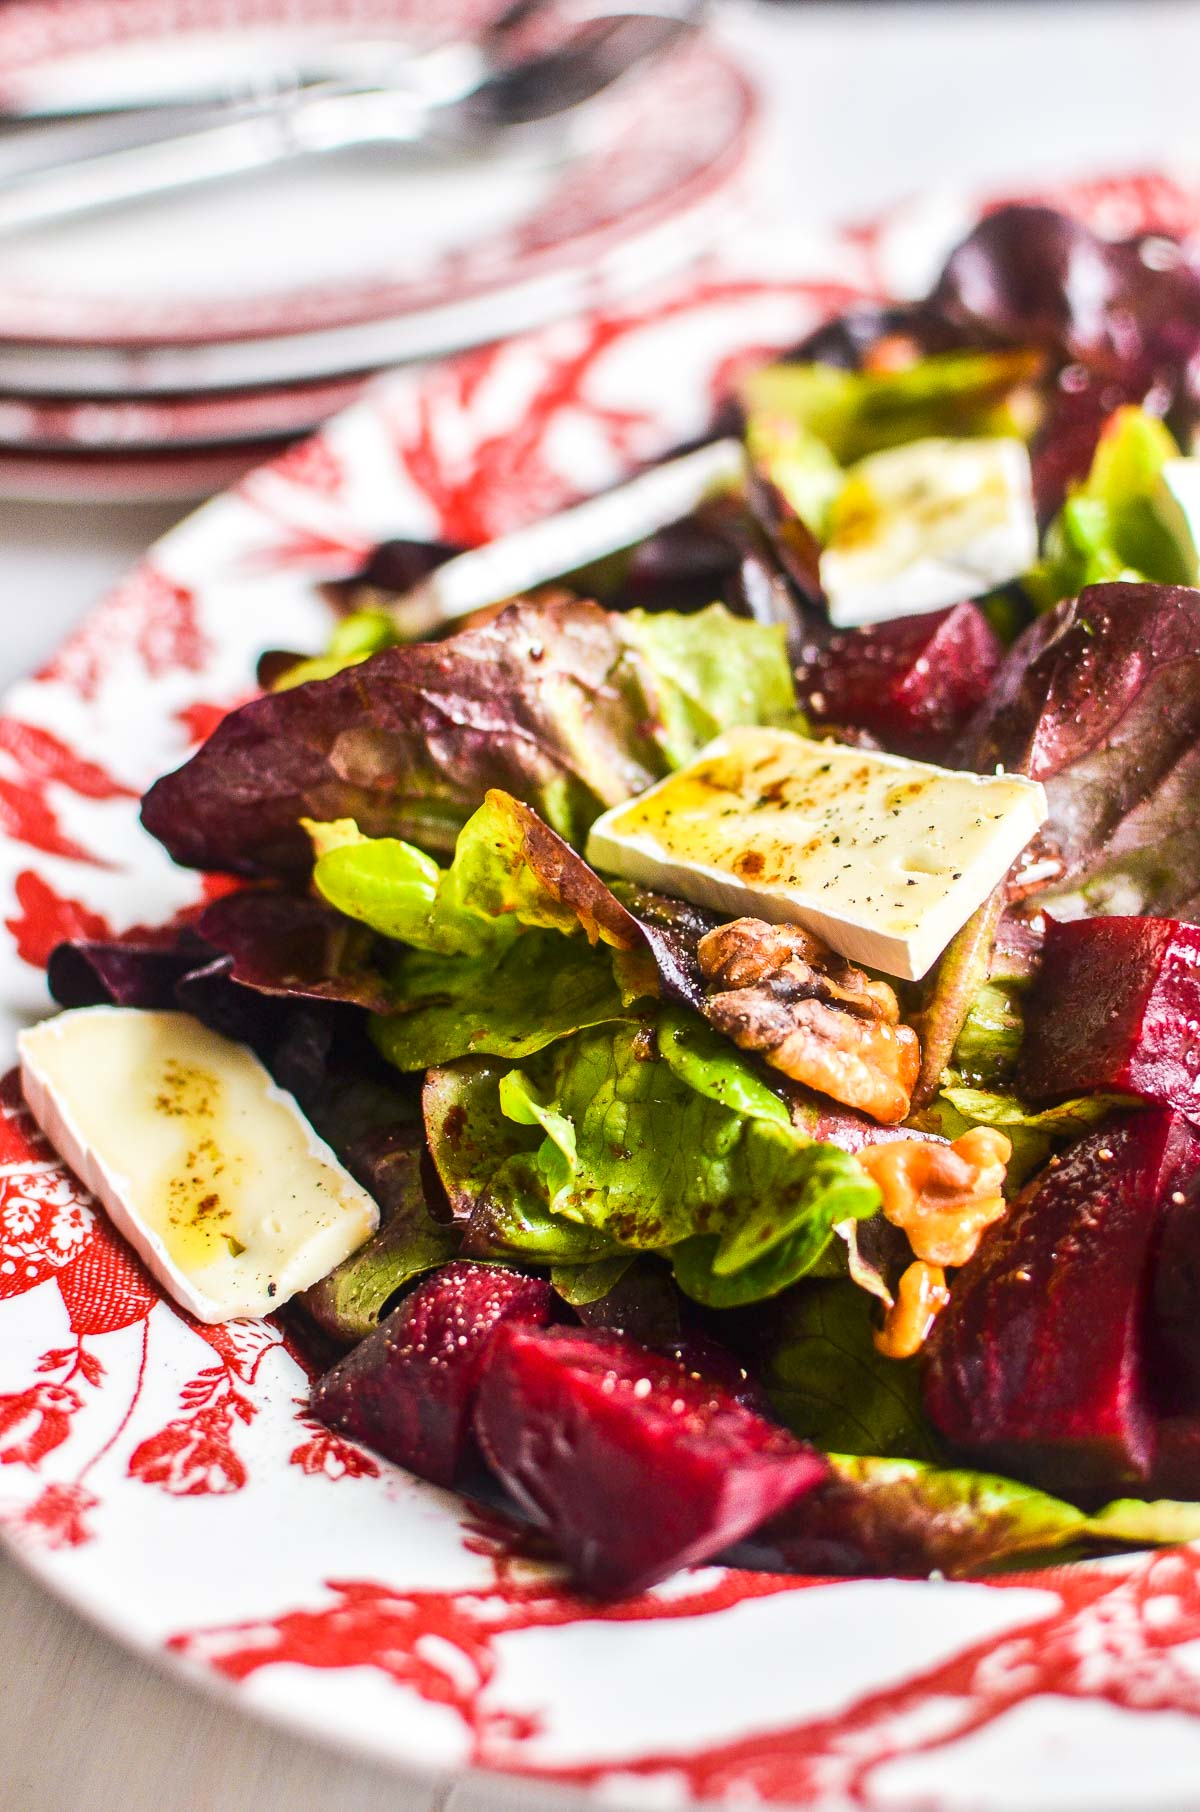 Roasted beet and brie salad on a red patterned platter.